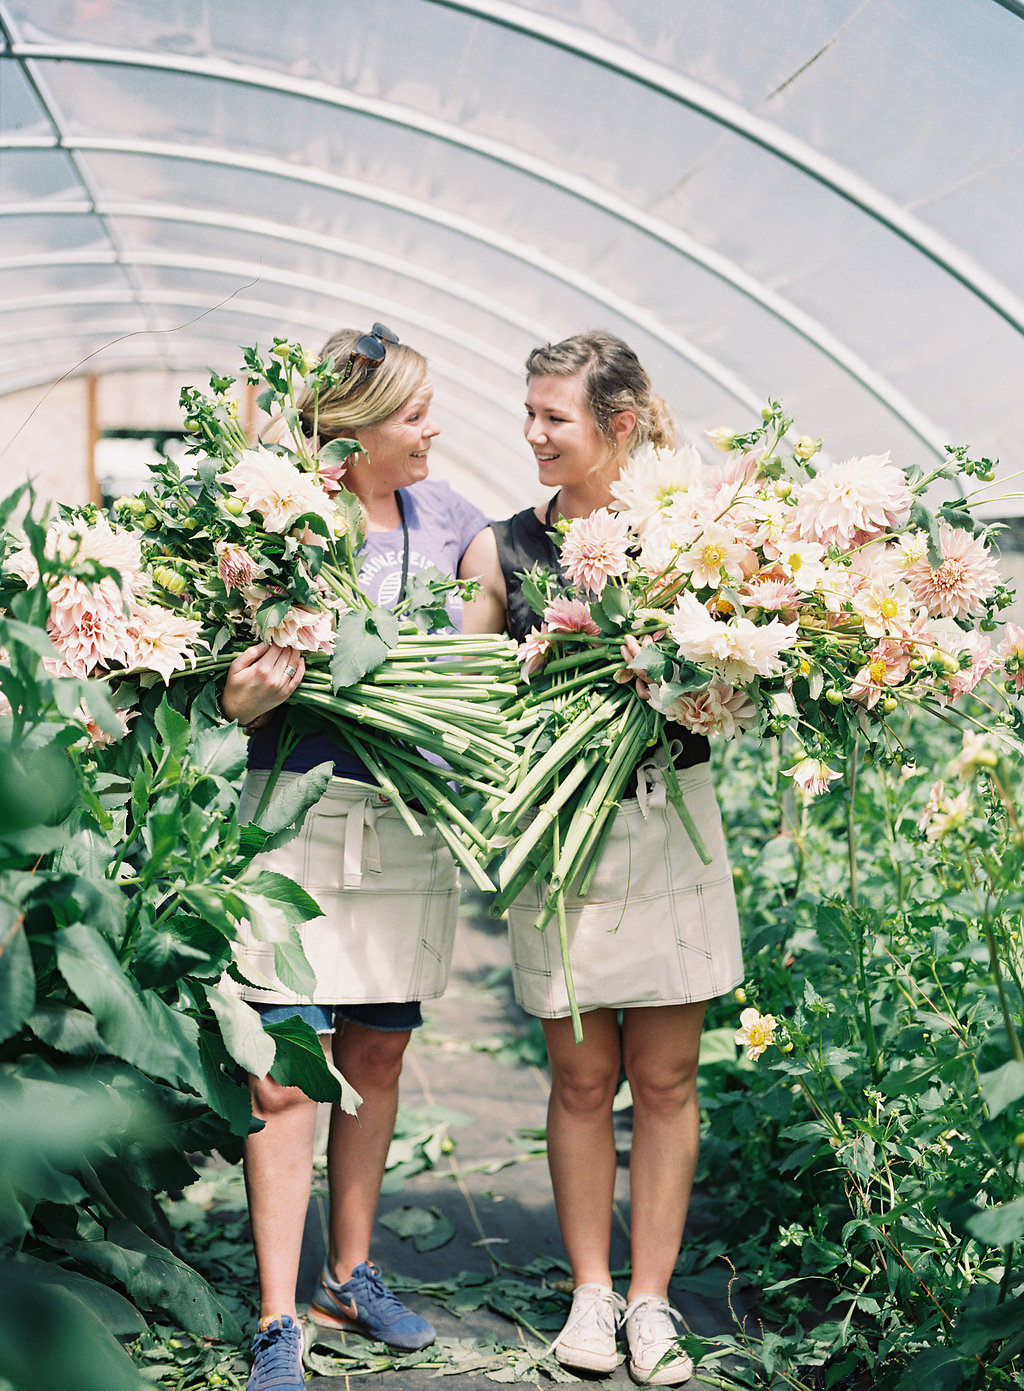 The Elevated Wildflower Meadow-Inspired Workshop and Dinner with Floret Flowers, Part One